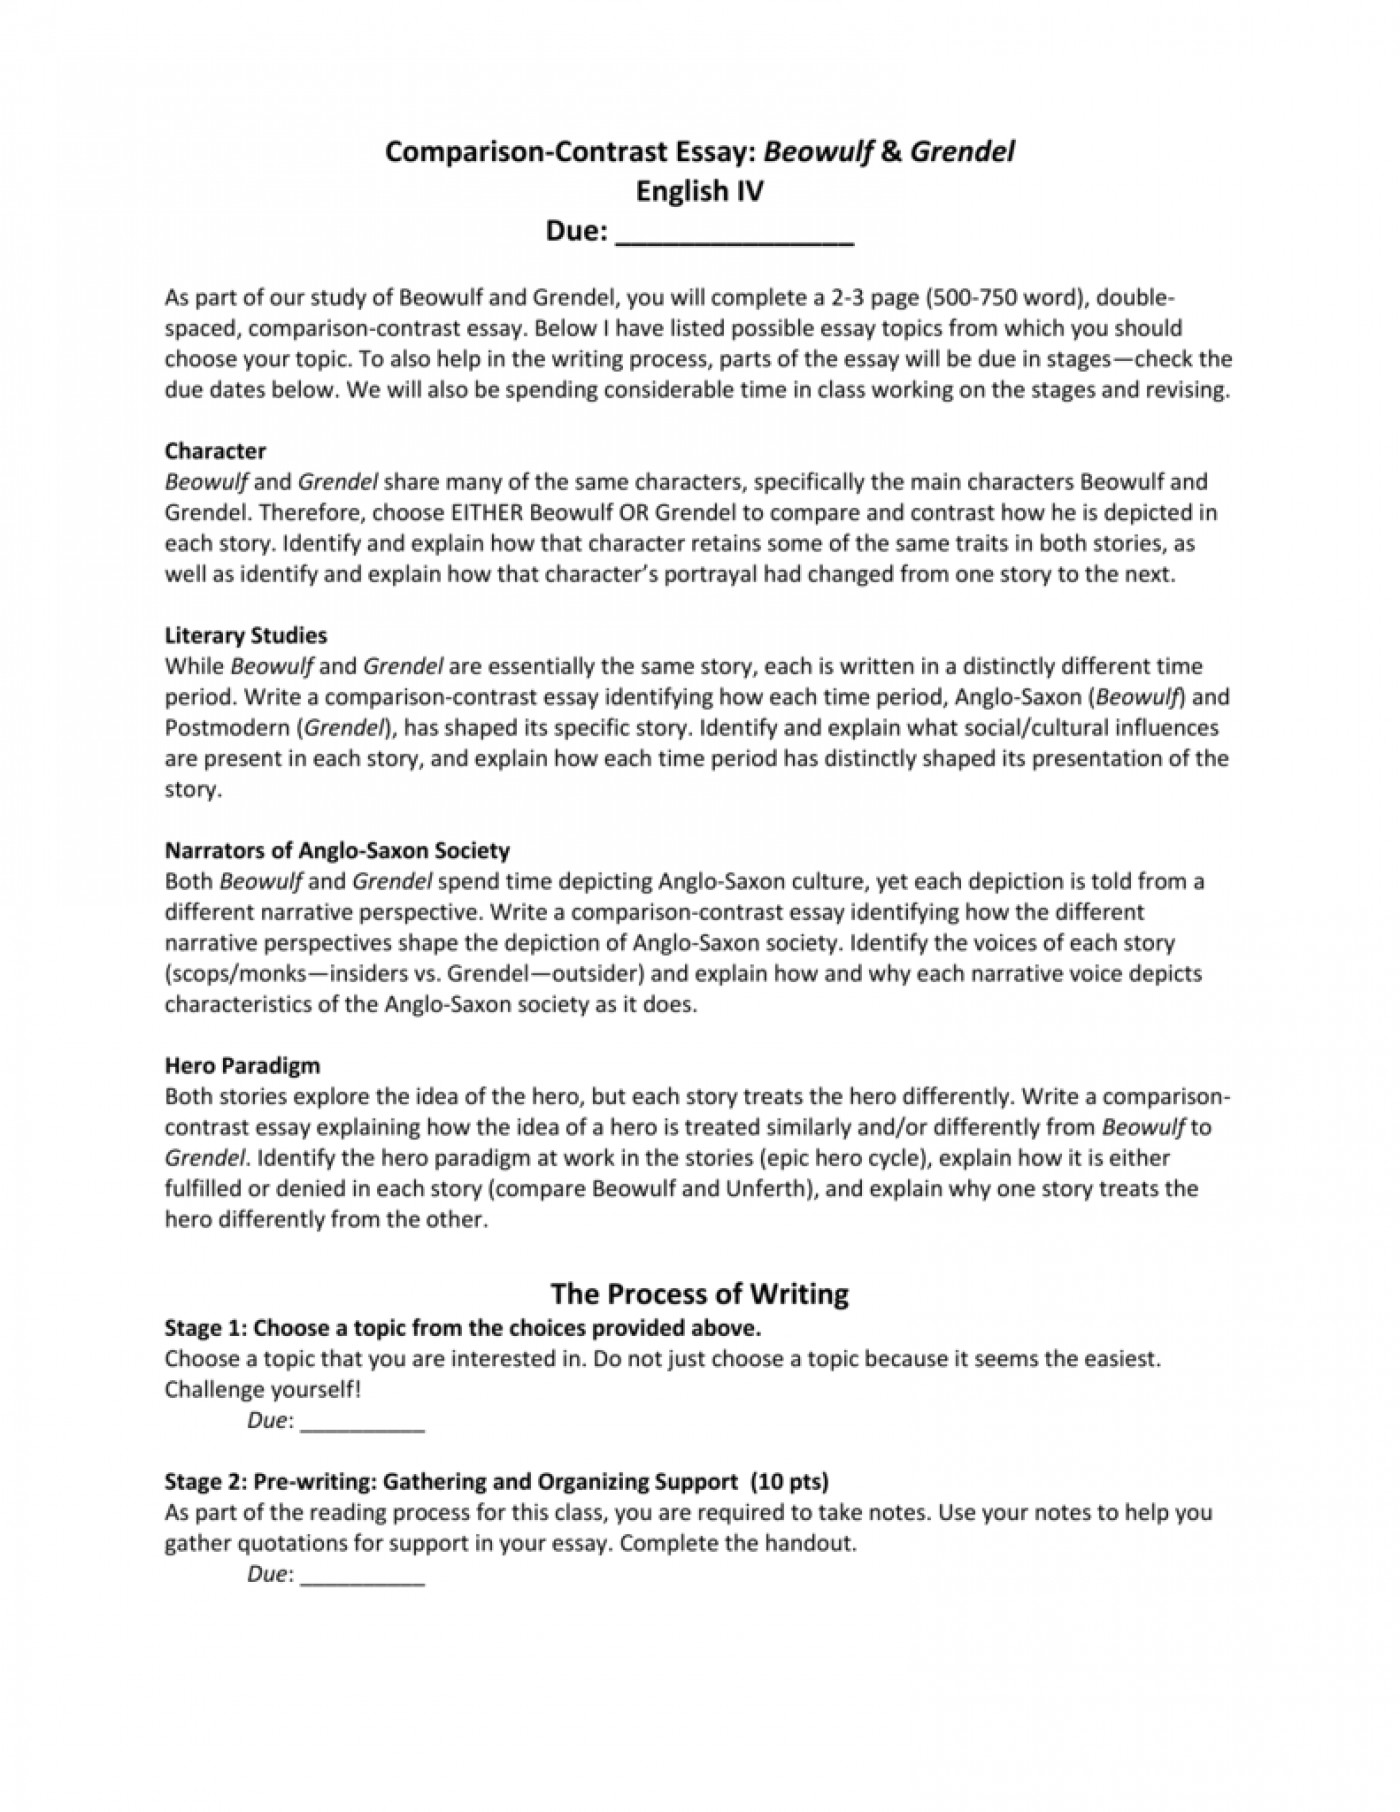 010 Compare And Contrast Essay 008061732 1 Frightening Examples Elementary Outline For Middle School Introduction 1400